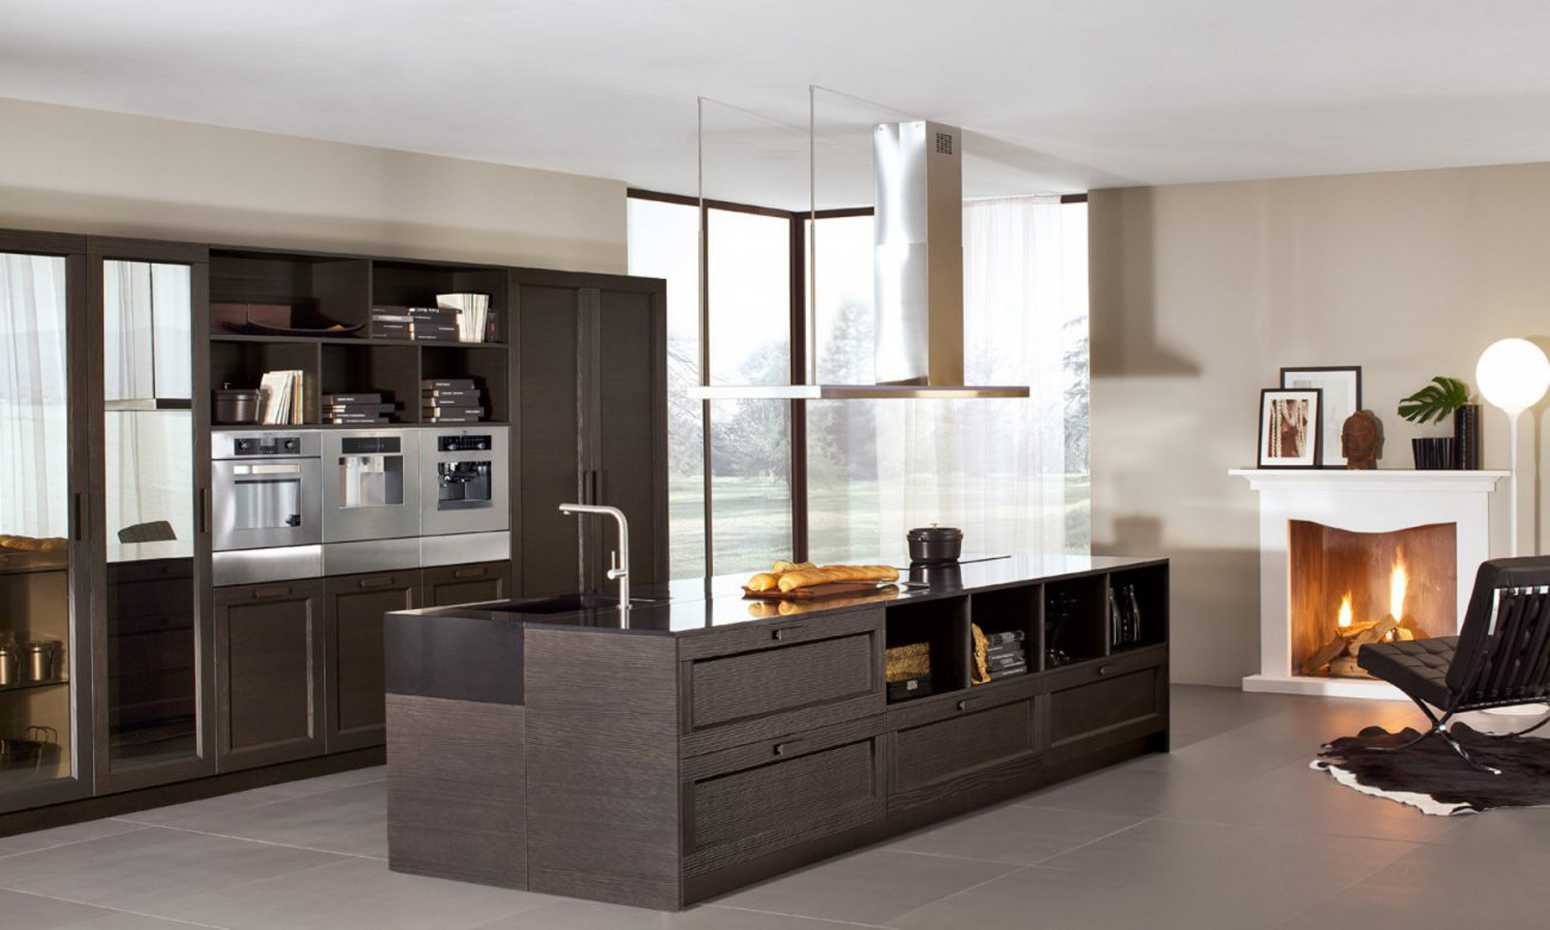 Glamour by Doimo Cucine product image 1